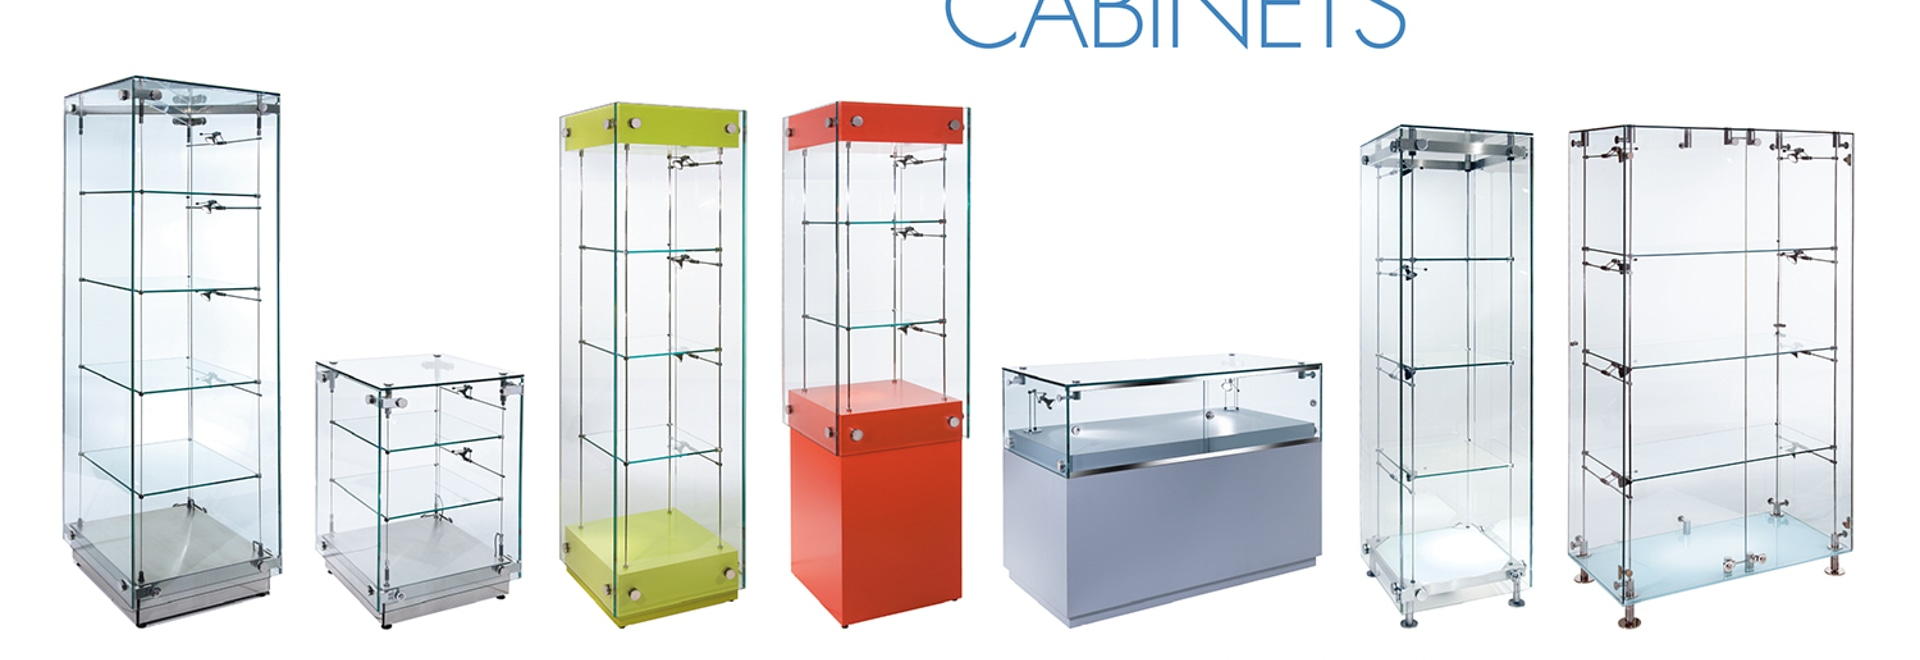 custom display dimensions leisure model johannesburg glass interests particular made hobbies vertoon kaste types cabinets different cases and cabinet wooden sandton toys gauteng